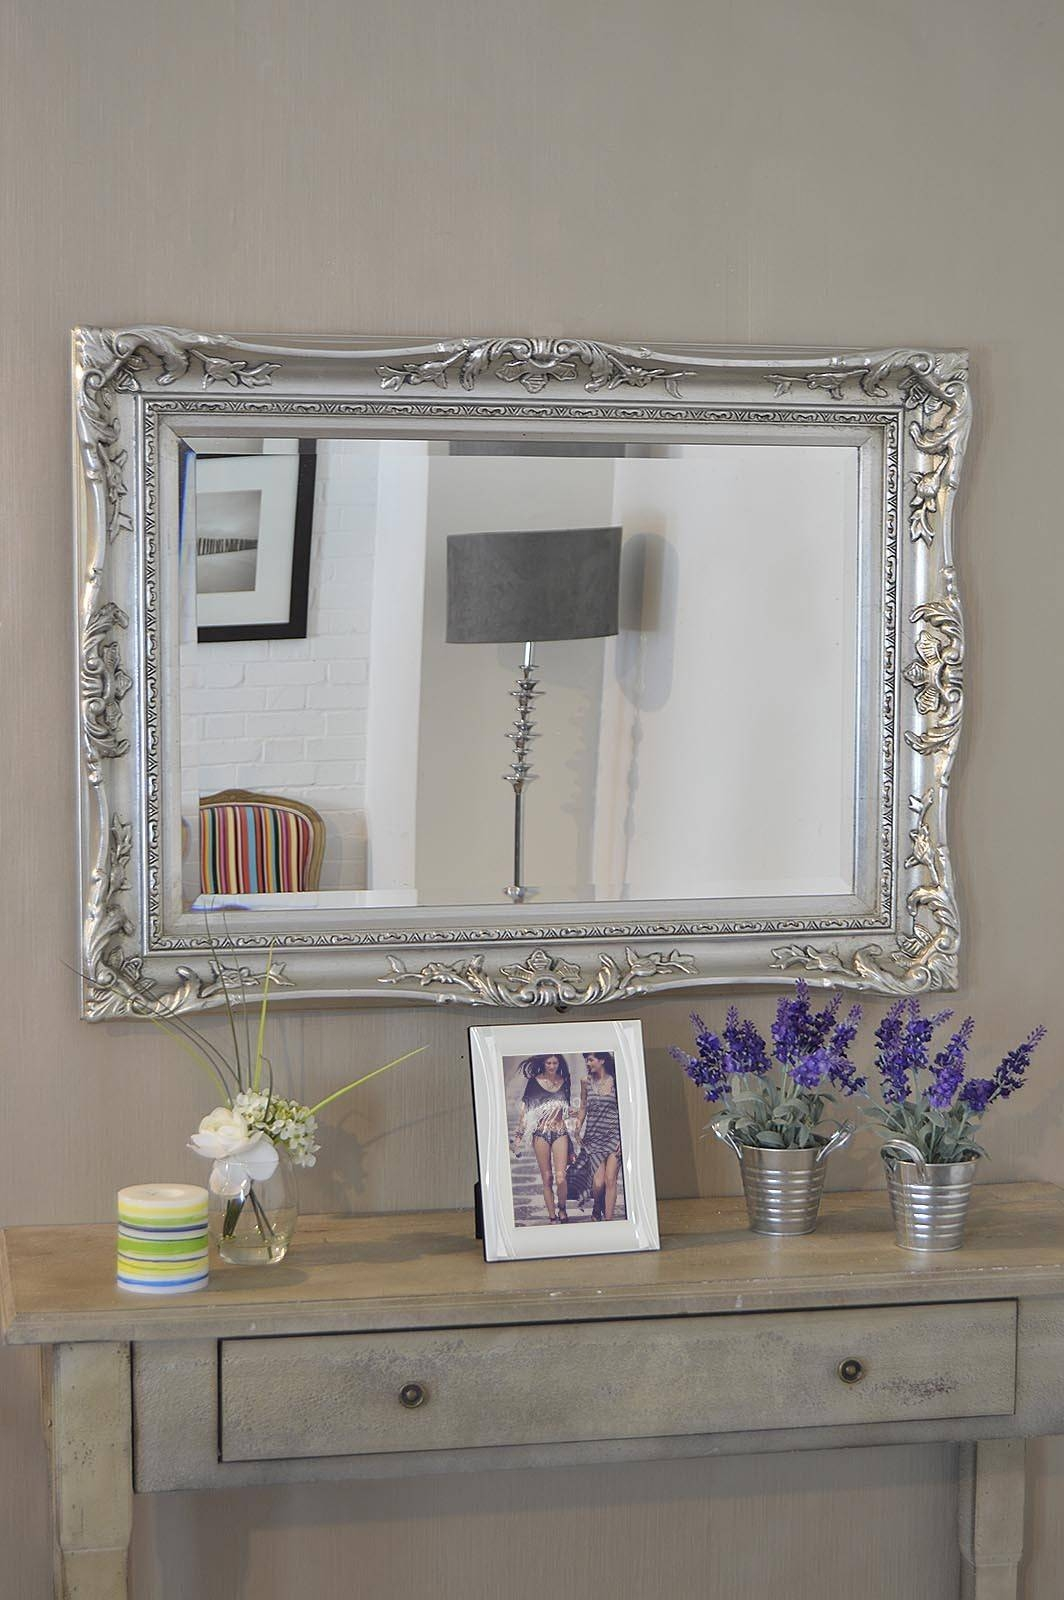 Large Antique Wall Mirror Ornate Frame Antique Ornate Wall Mirrors Within Antique Ornate Mirrors (View 15 of 25)